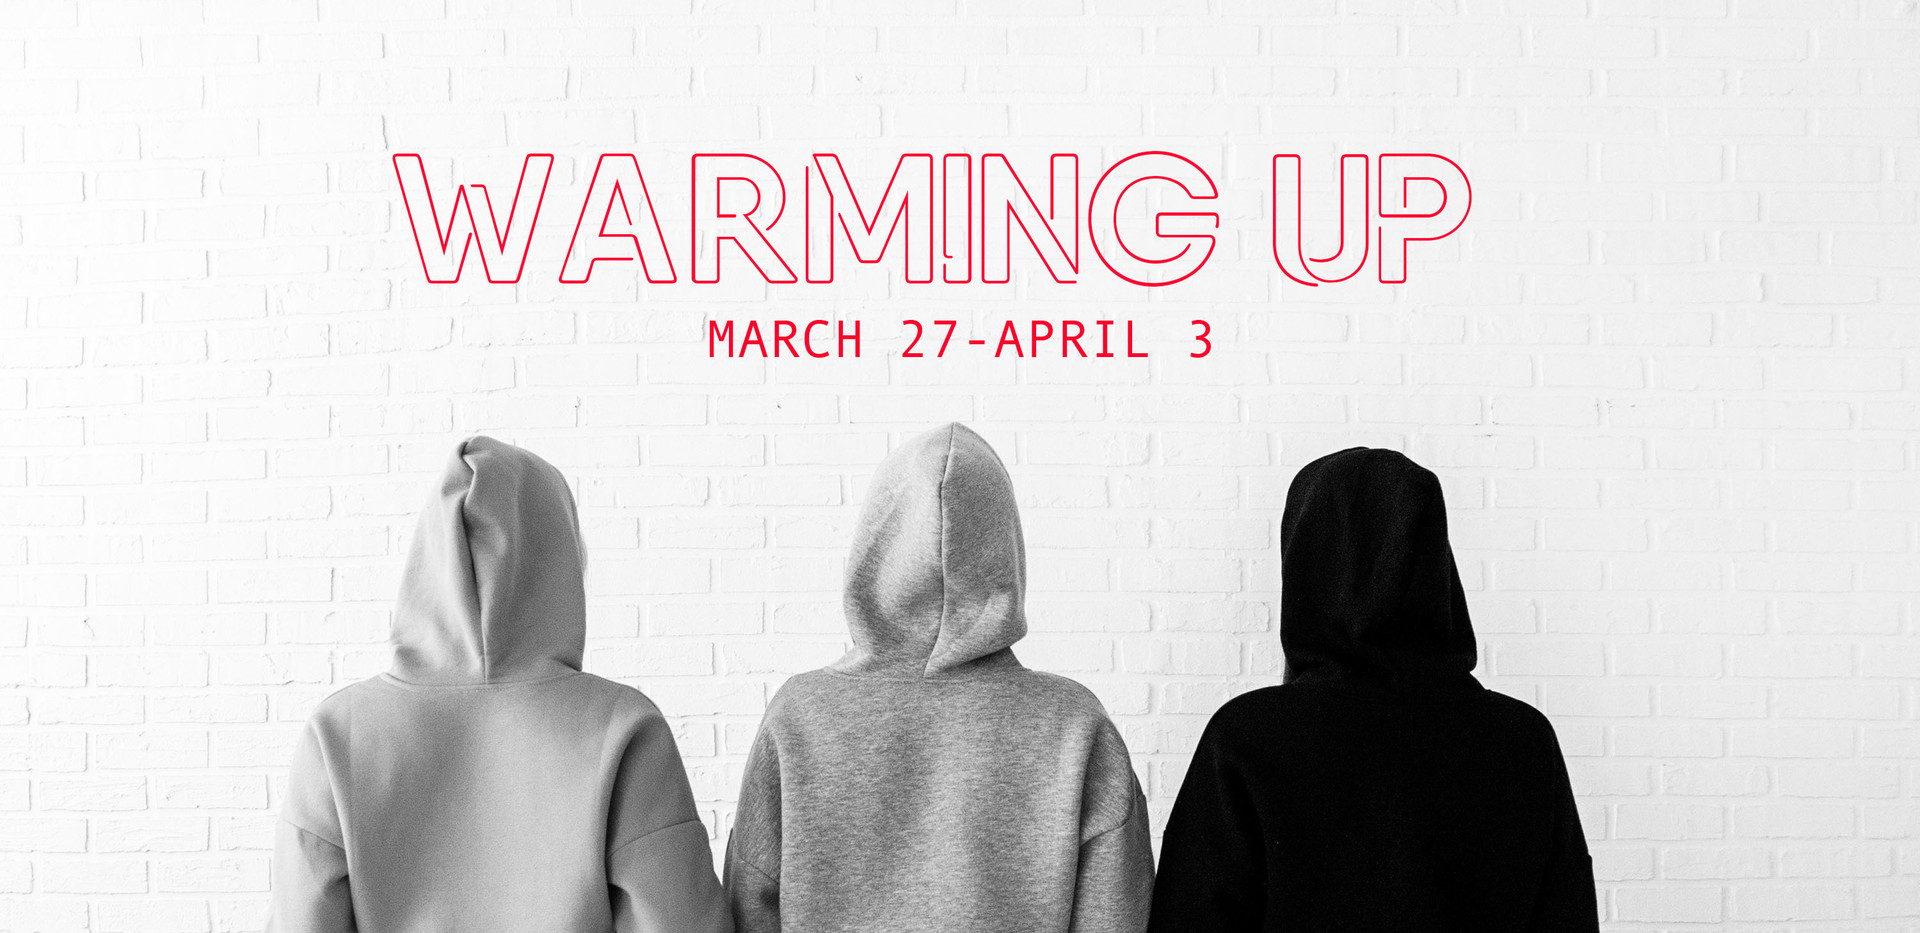 The Fort Worth Art Collective presents WARMING UP a virtual Spring Gallery Night weeklong exhibit featuring new, personal work created with hope and inspiration as we move into a new year with a sense of purpose and creativity.